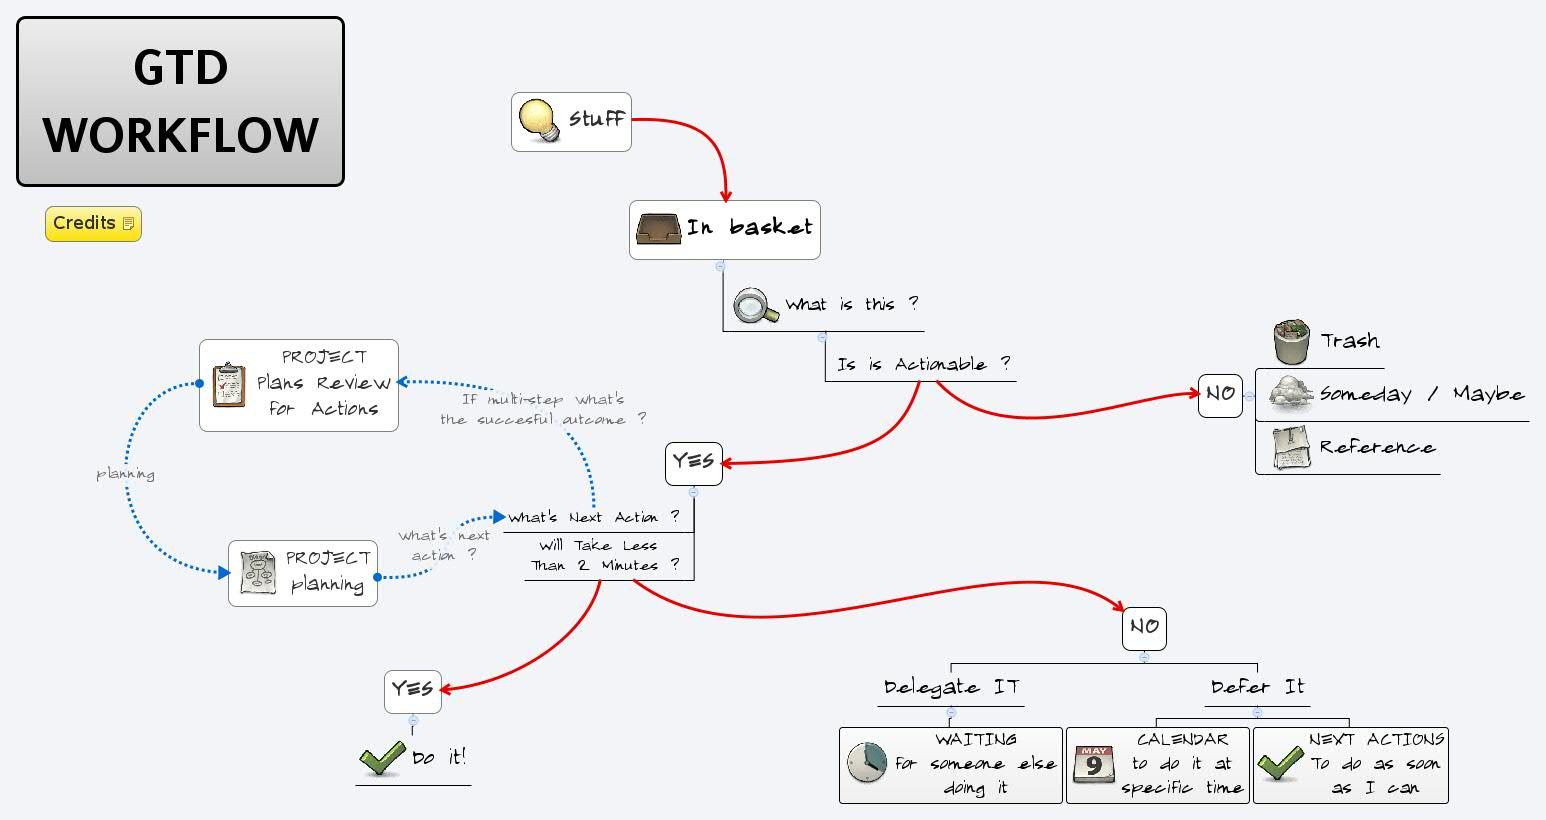 gtd workflow xmind mind mapping software